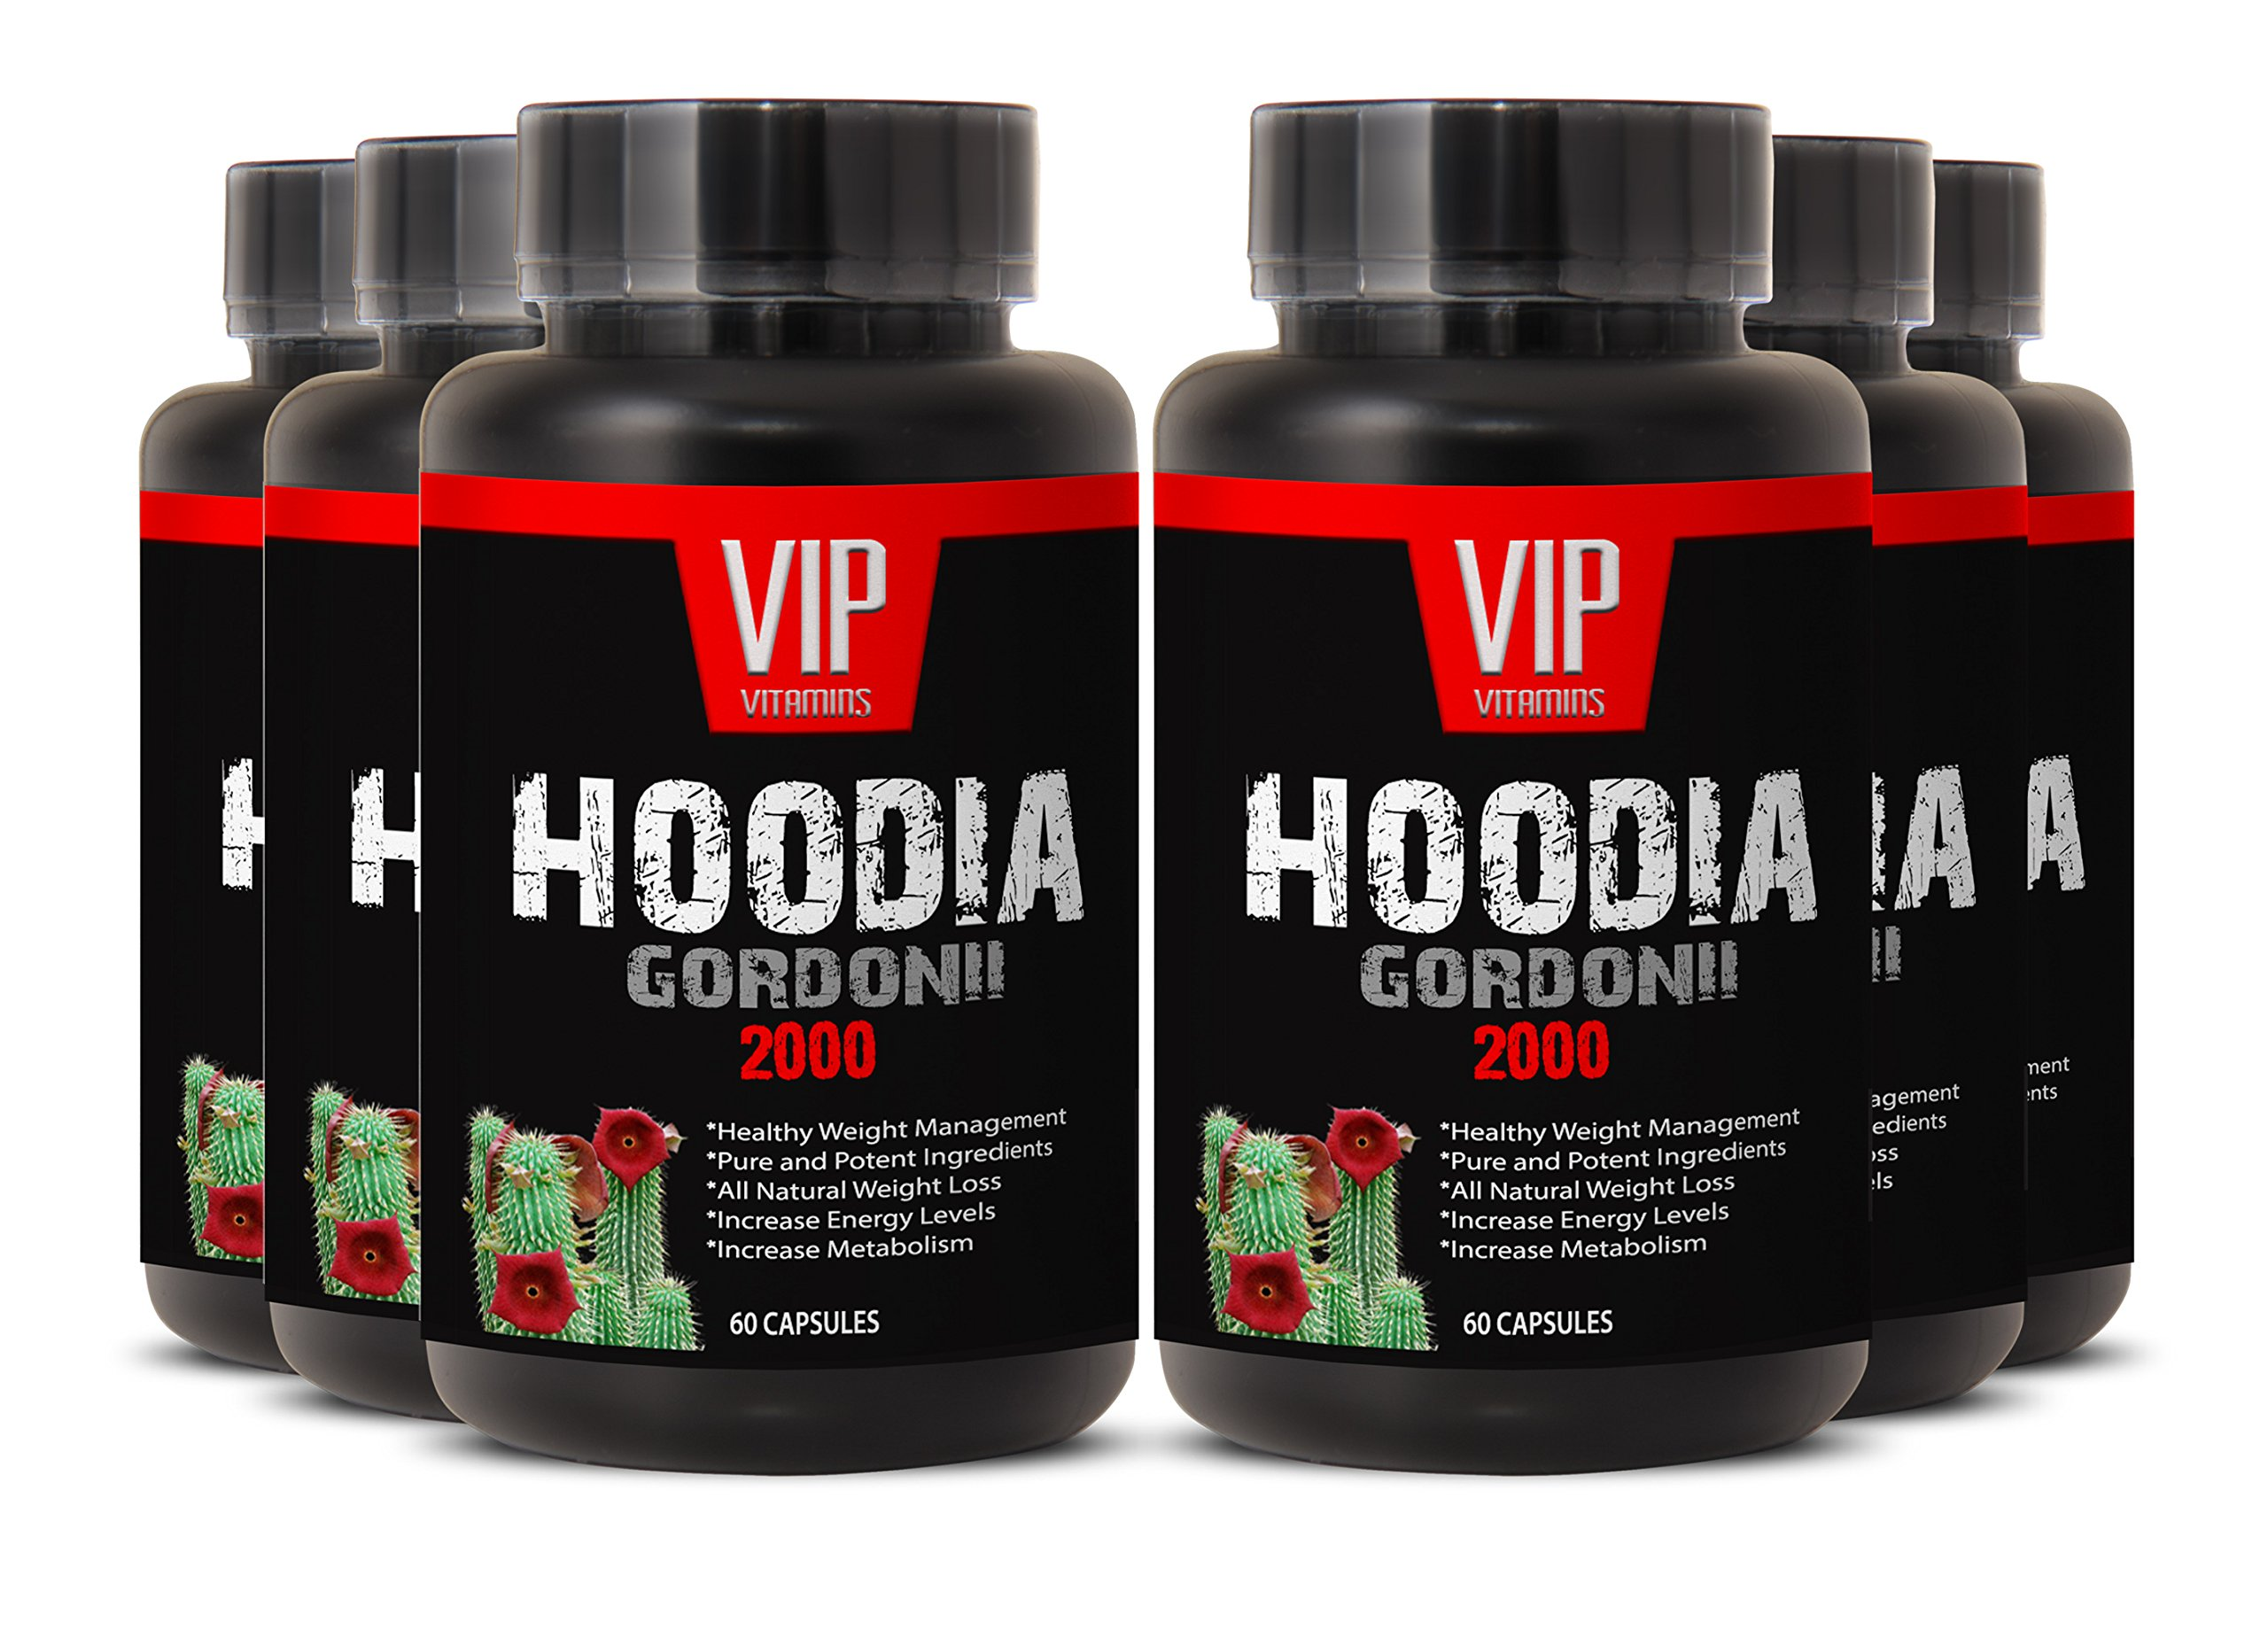 Hoodia Gordonii Best for Weight Loss - Pure Hoodia Gordonii Extract 2000mg - Hoodia Gordonii Highly Effective Appetite Suppressing (6 bottles 360 capsules)